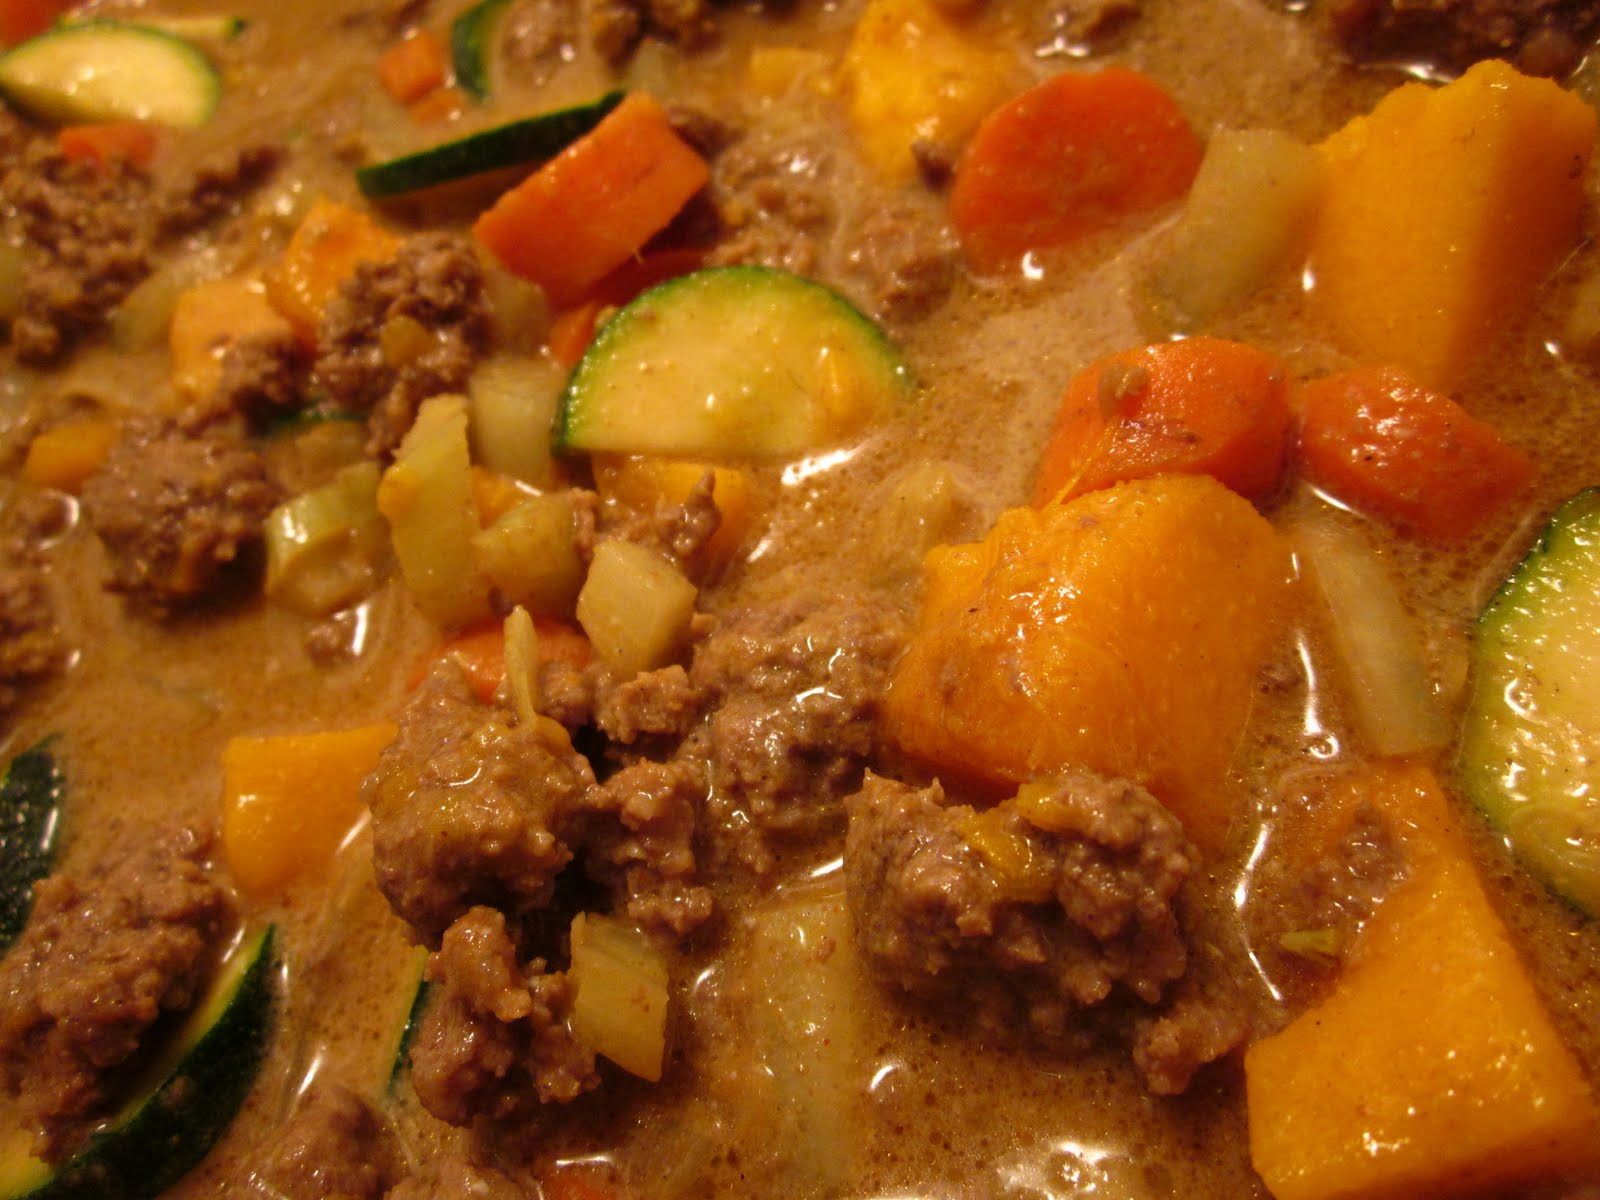 Culinary Adventures with Camilla: Curried Beef and Pumpkin Noodle Bowl